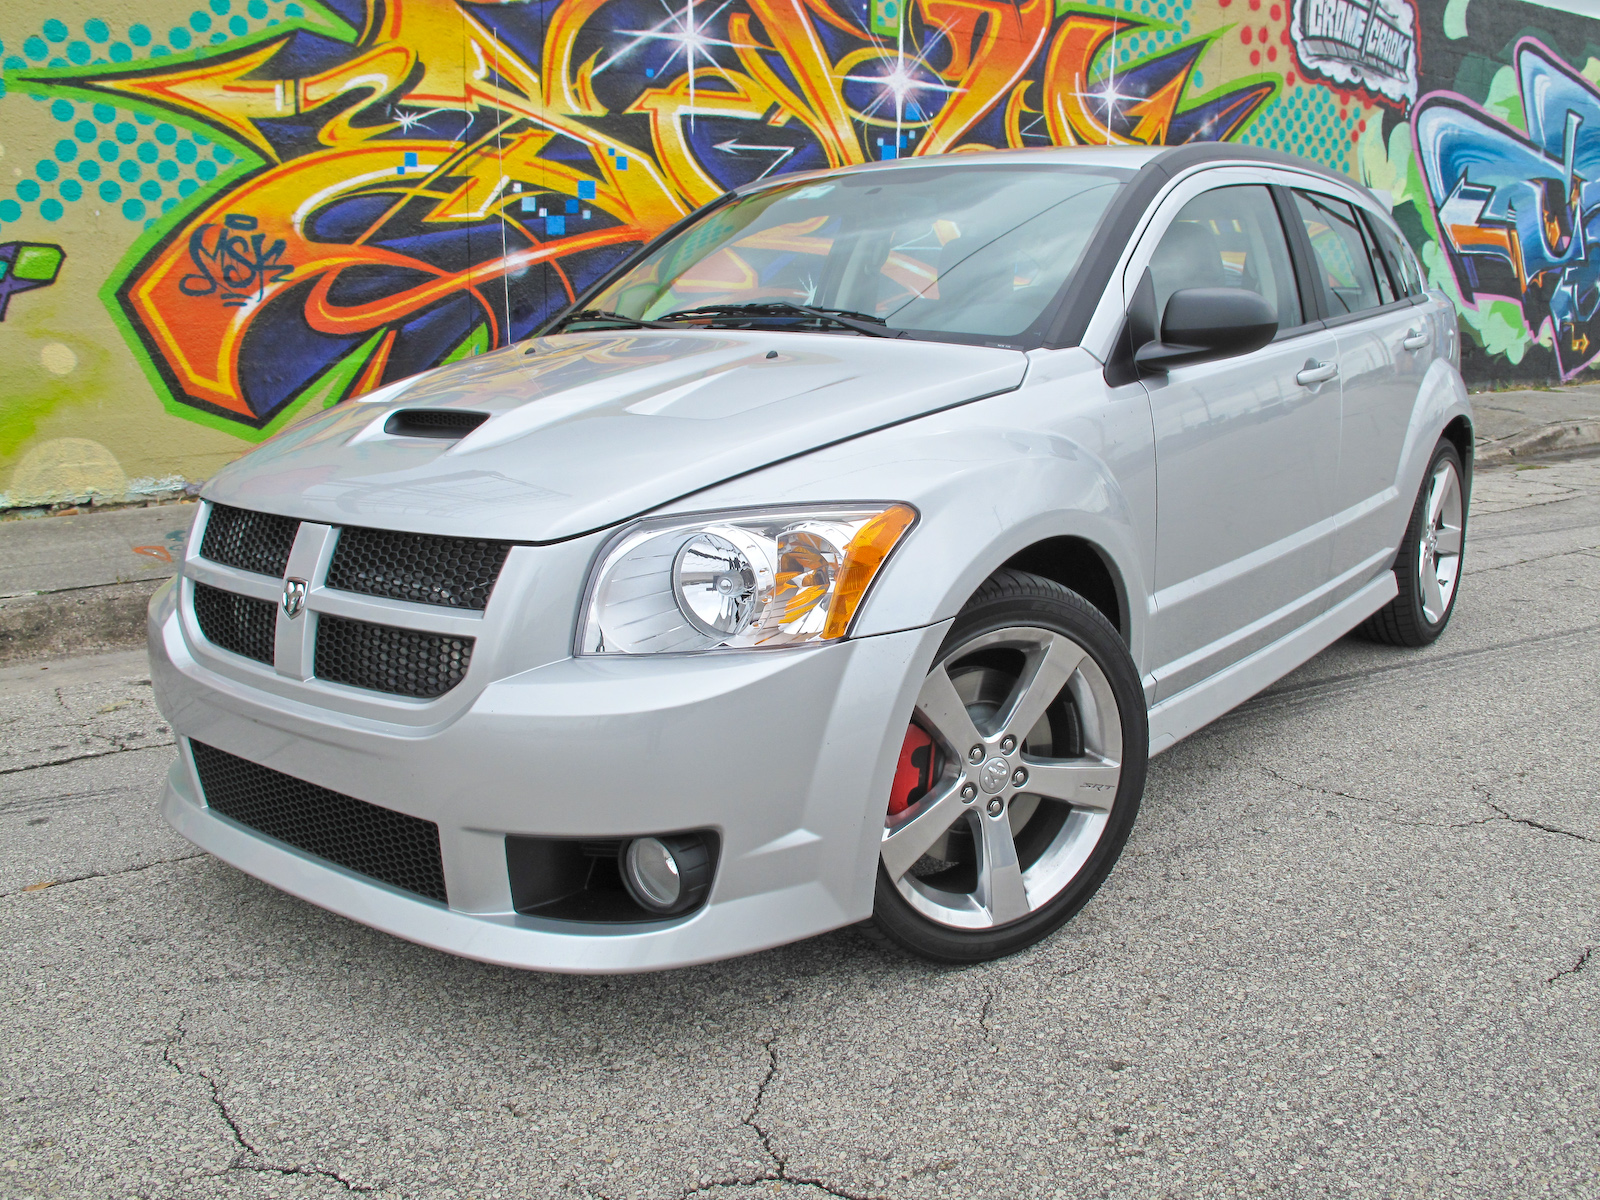 Dodge Dart Srt4 >> Dodge Caliber SRT-4: Exterior Impresion Pictures, Photos ...